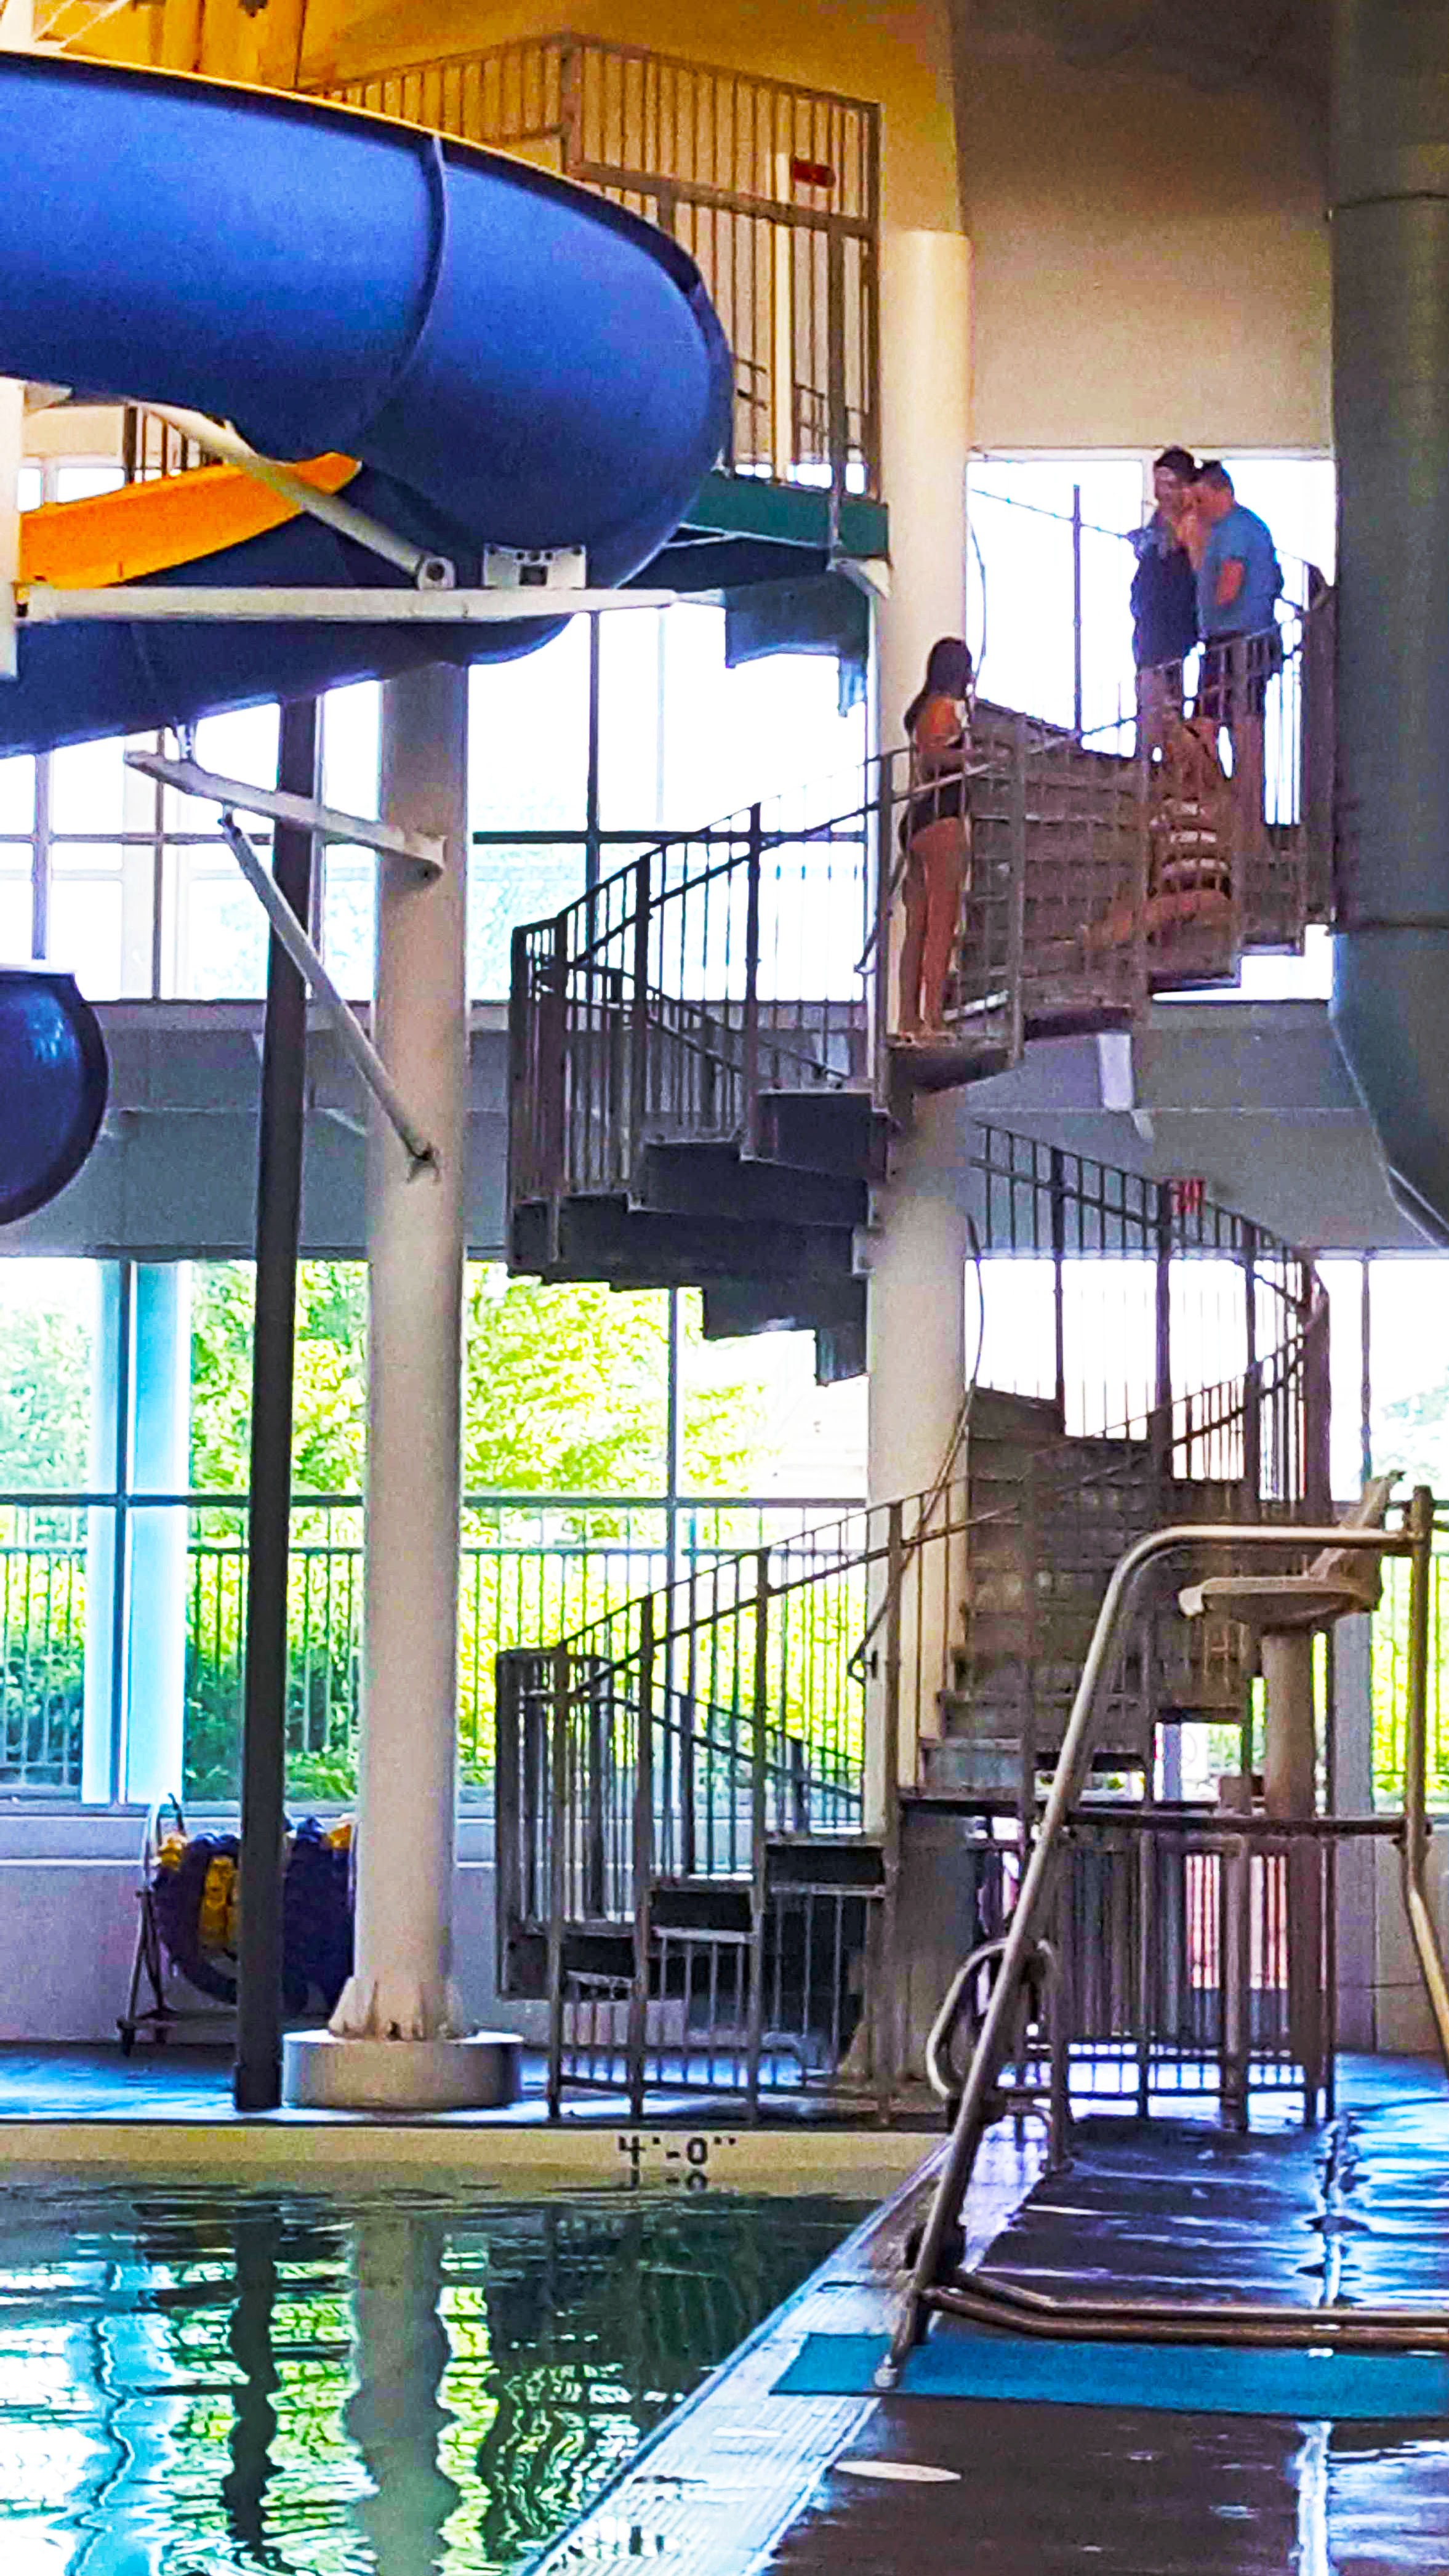 Spiral staircase one story tall leading to a waterslide. Girl is sitting on steps pulling herself up them. 3 friends nearby.